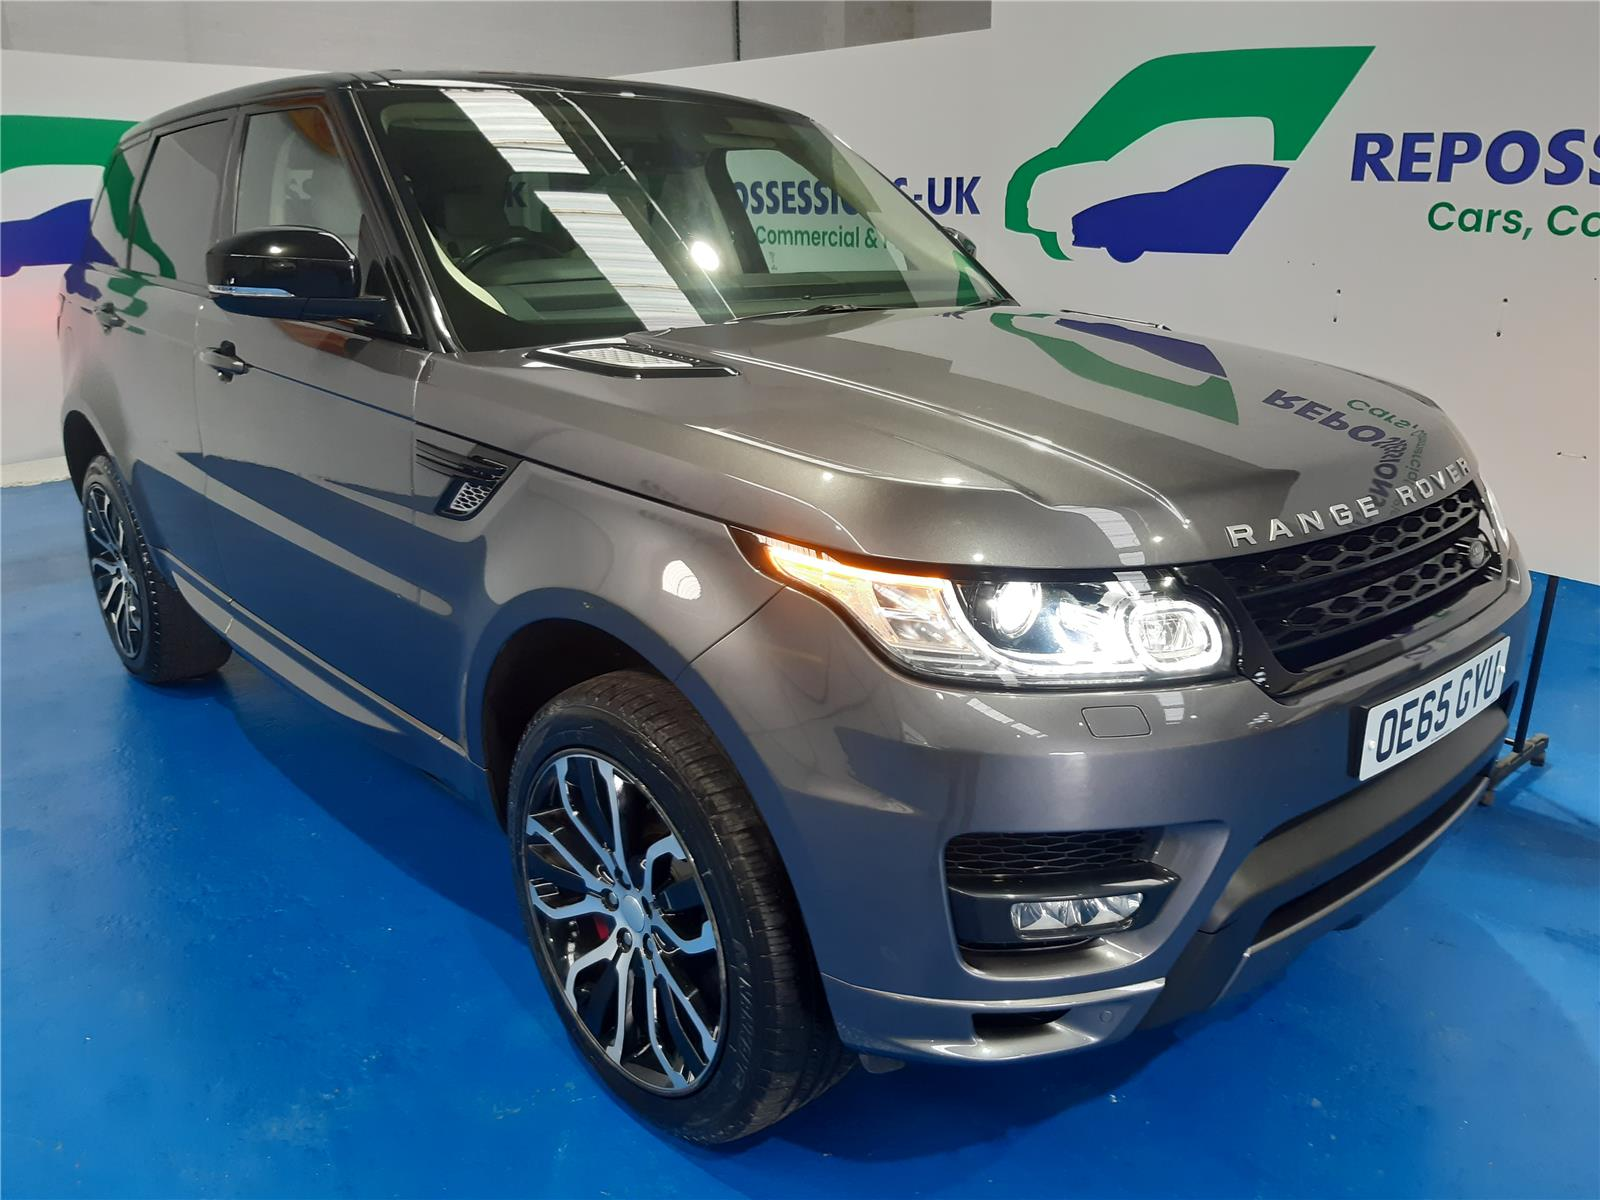 2015 LAND ROVER RANGE ROVER SPORT SDV6 AUTOBIOGRAPHY DYNAMIC 2993 DIESEL AUTOMATIC 8 Speed 5 DOOR ESTATE